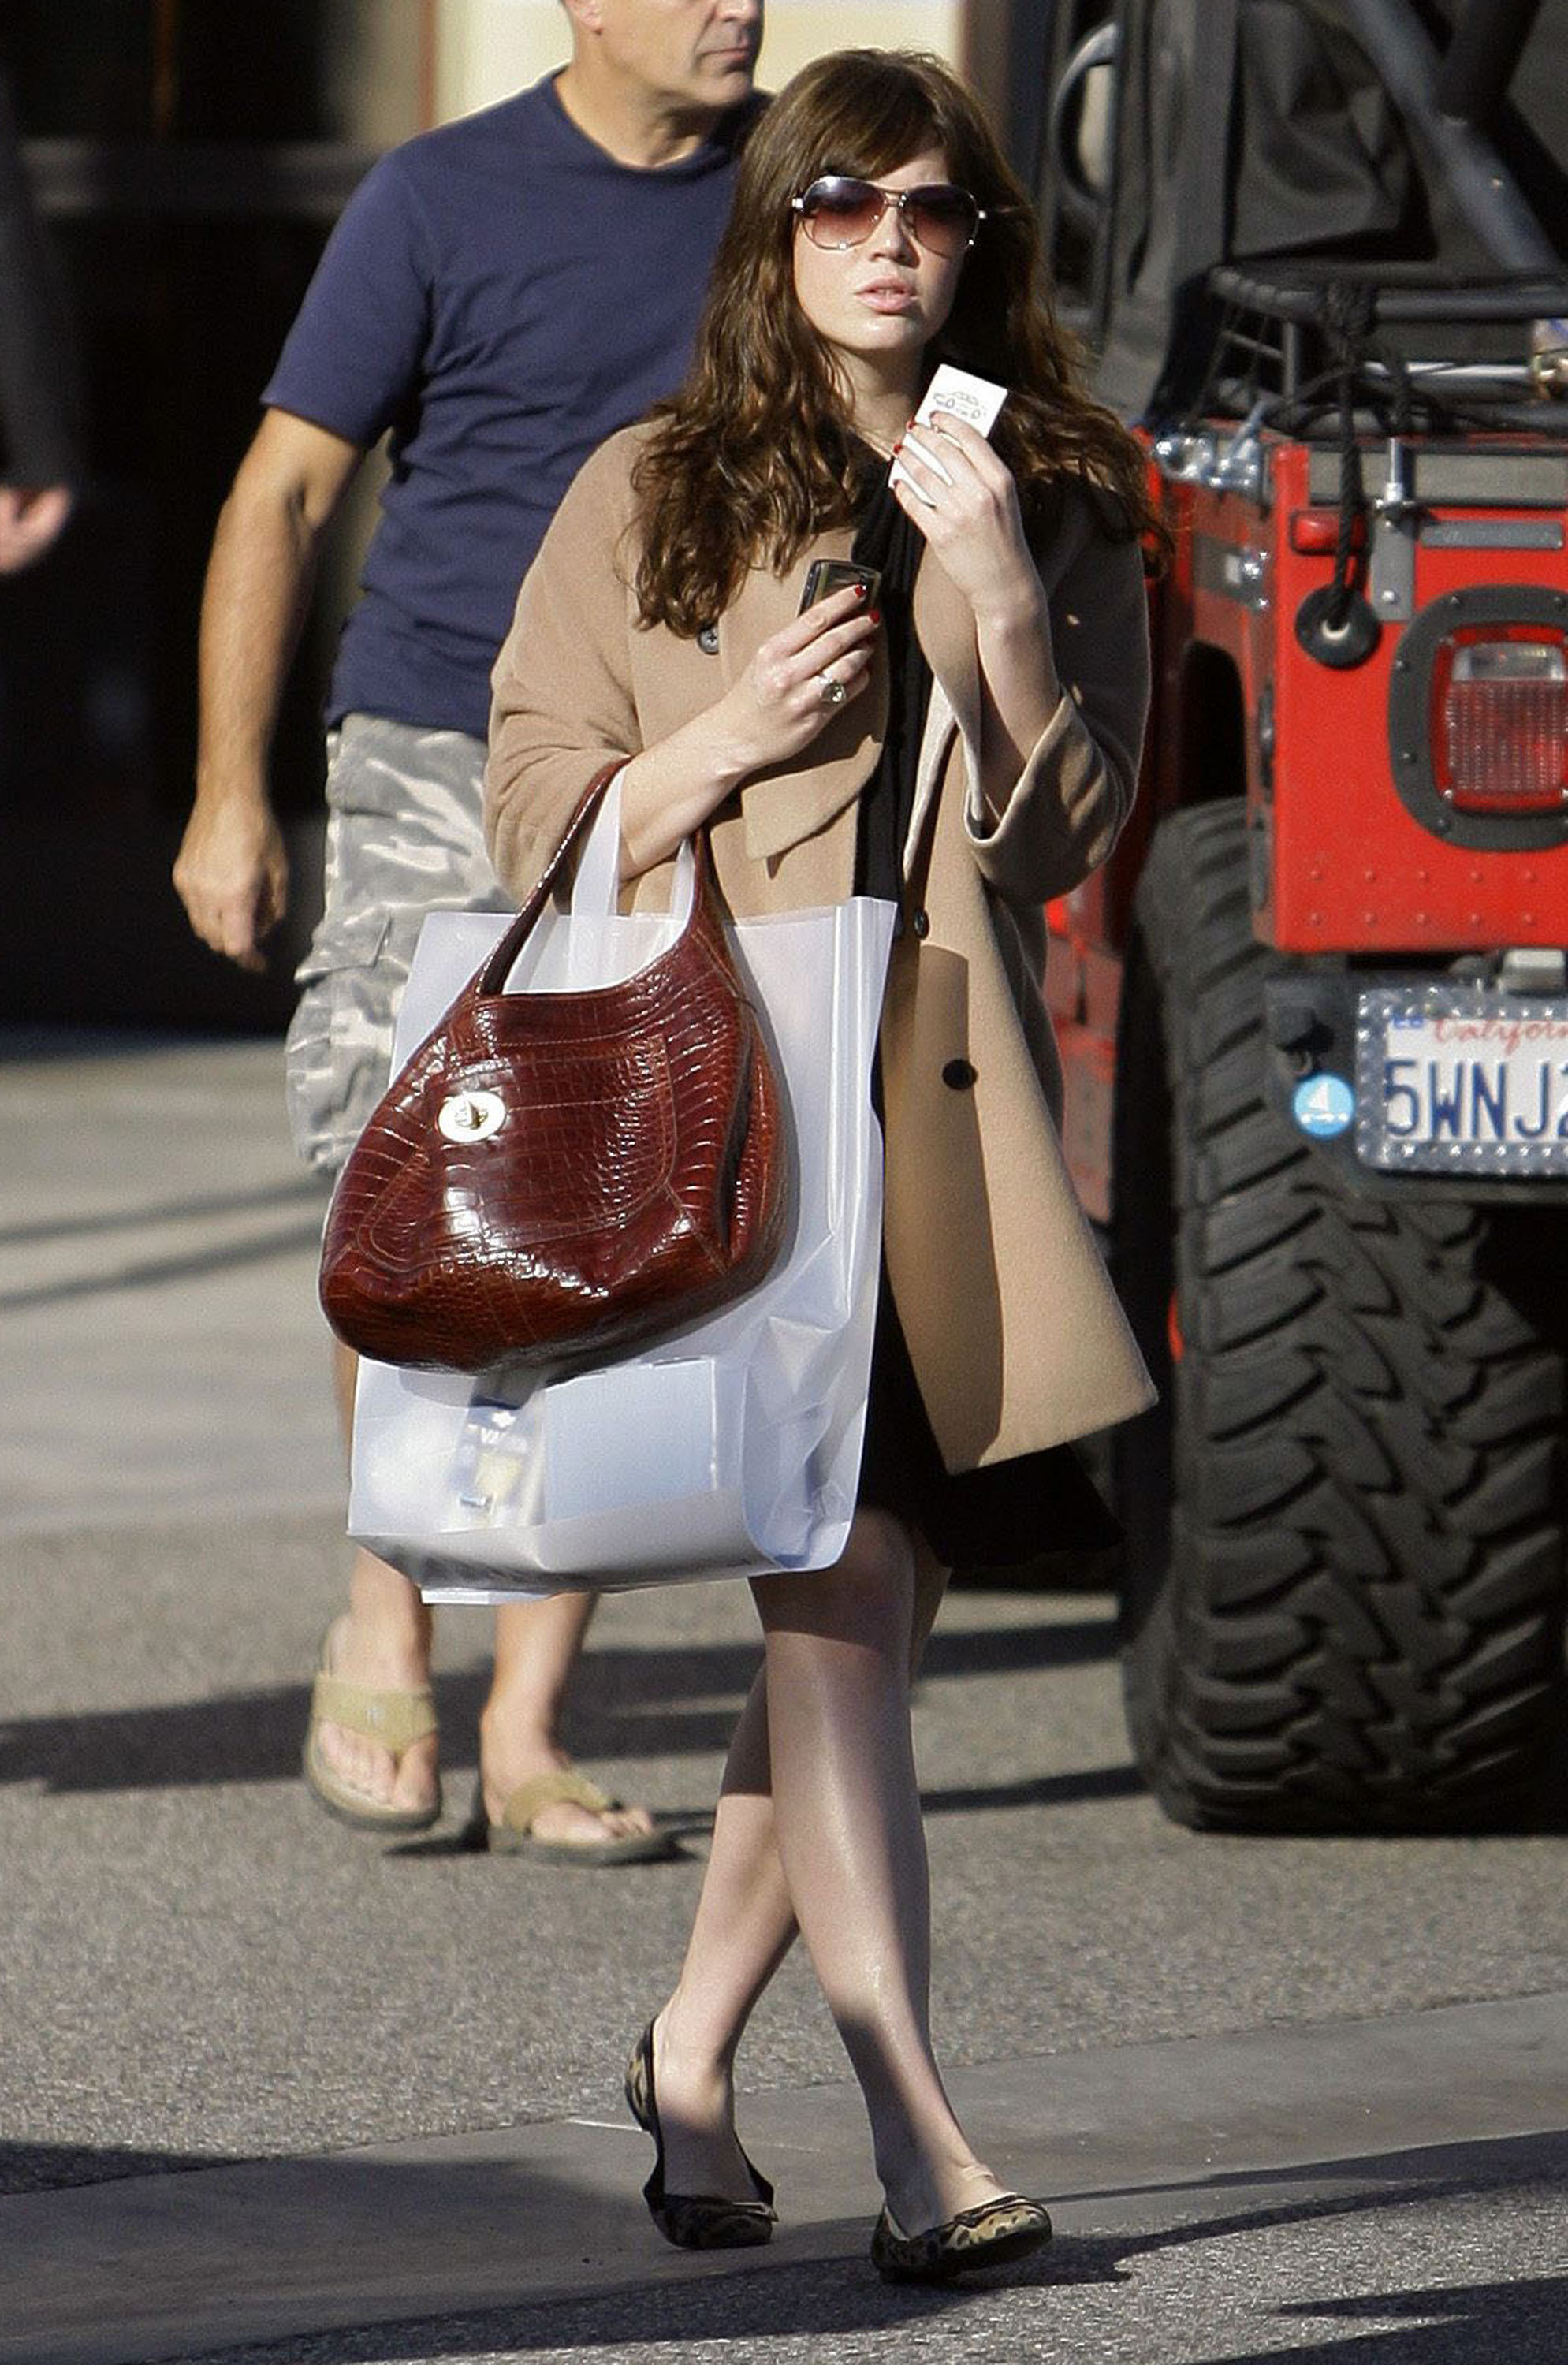 68100_celeb-city.eu_Mandy_Moore_out_and_about_in_West_Hollywood_10.12.2007_30_122_1018lo.jpg